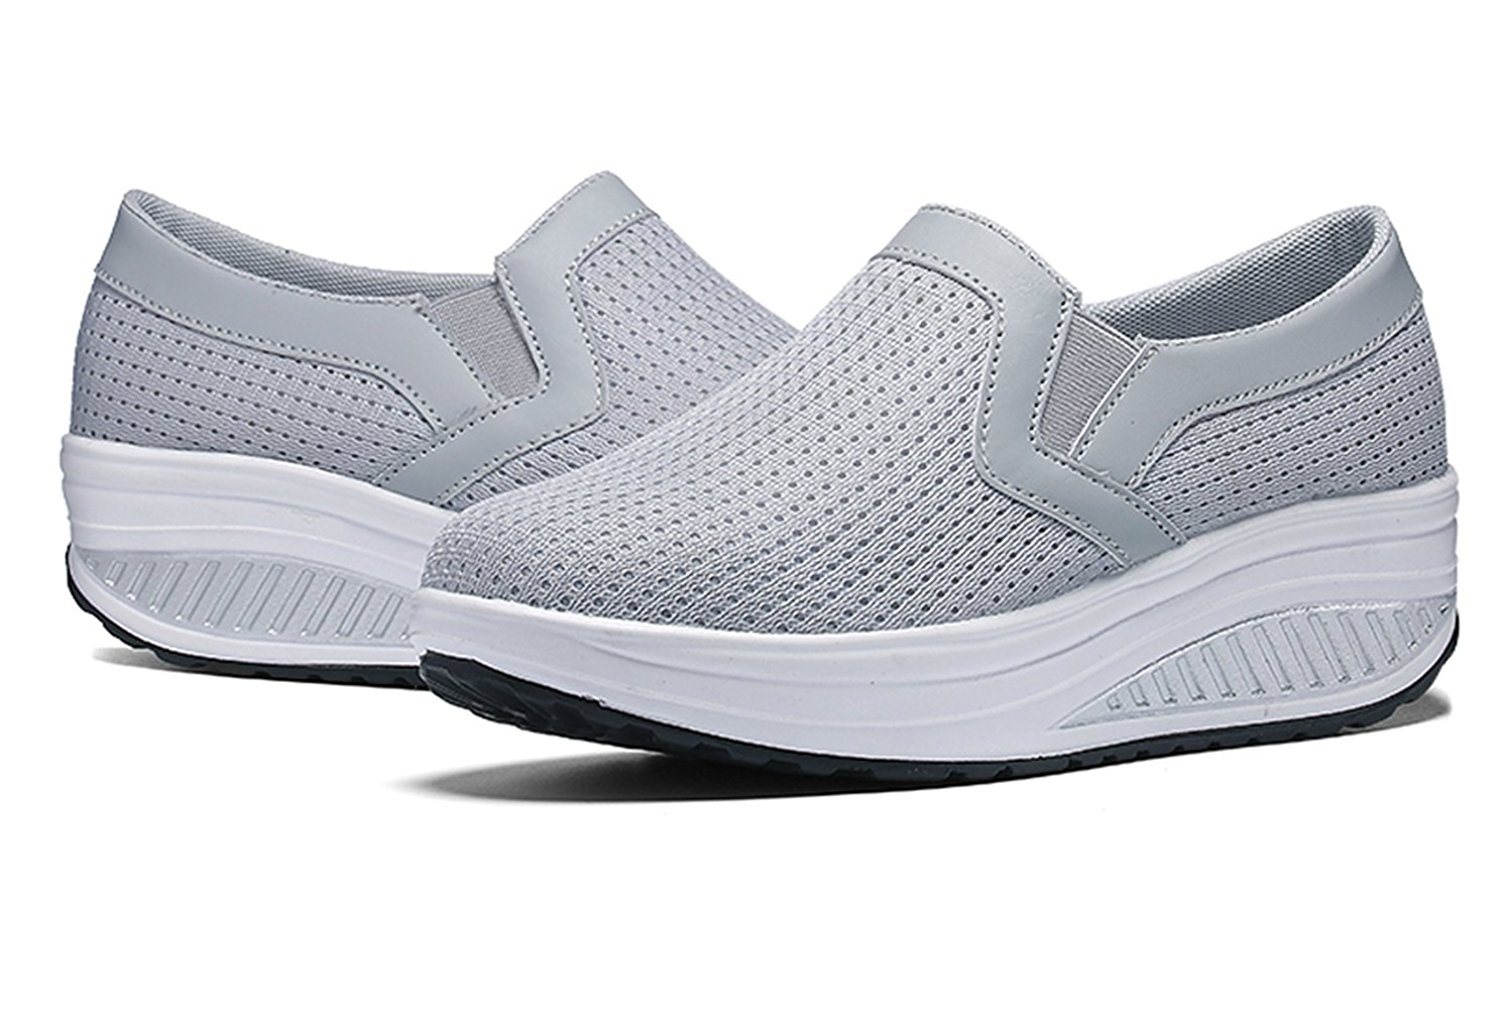 d470eef2a29ab Cheap Best Trainers For Power Walking, find Best Trainers For Power ...